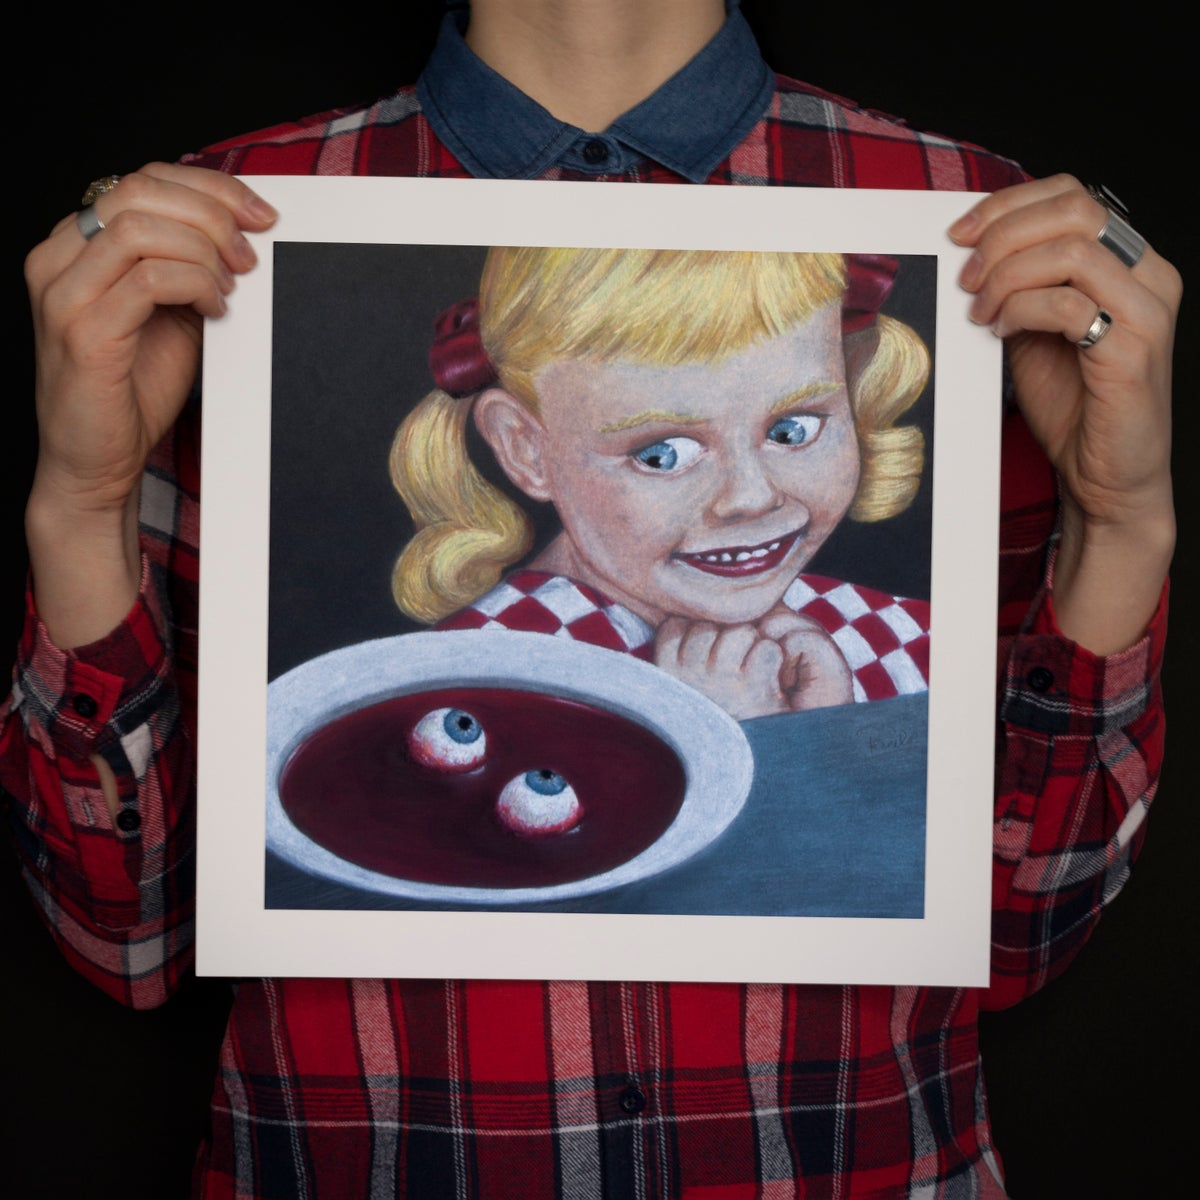 SINNY LIMITED EDITION GICLÉE PRINT